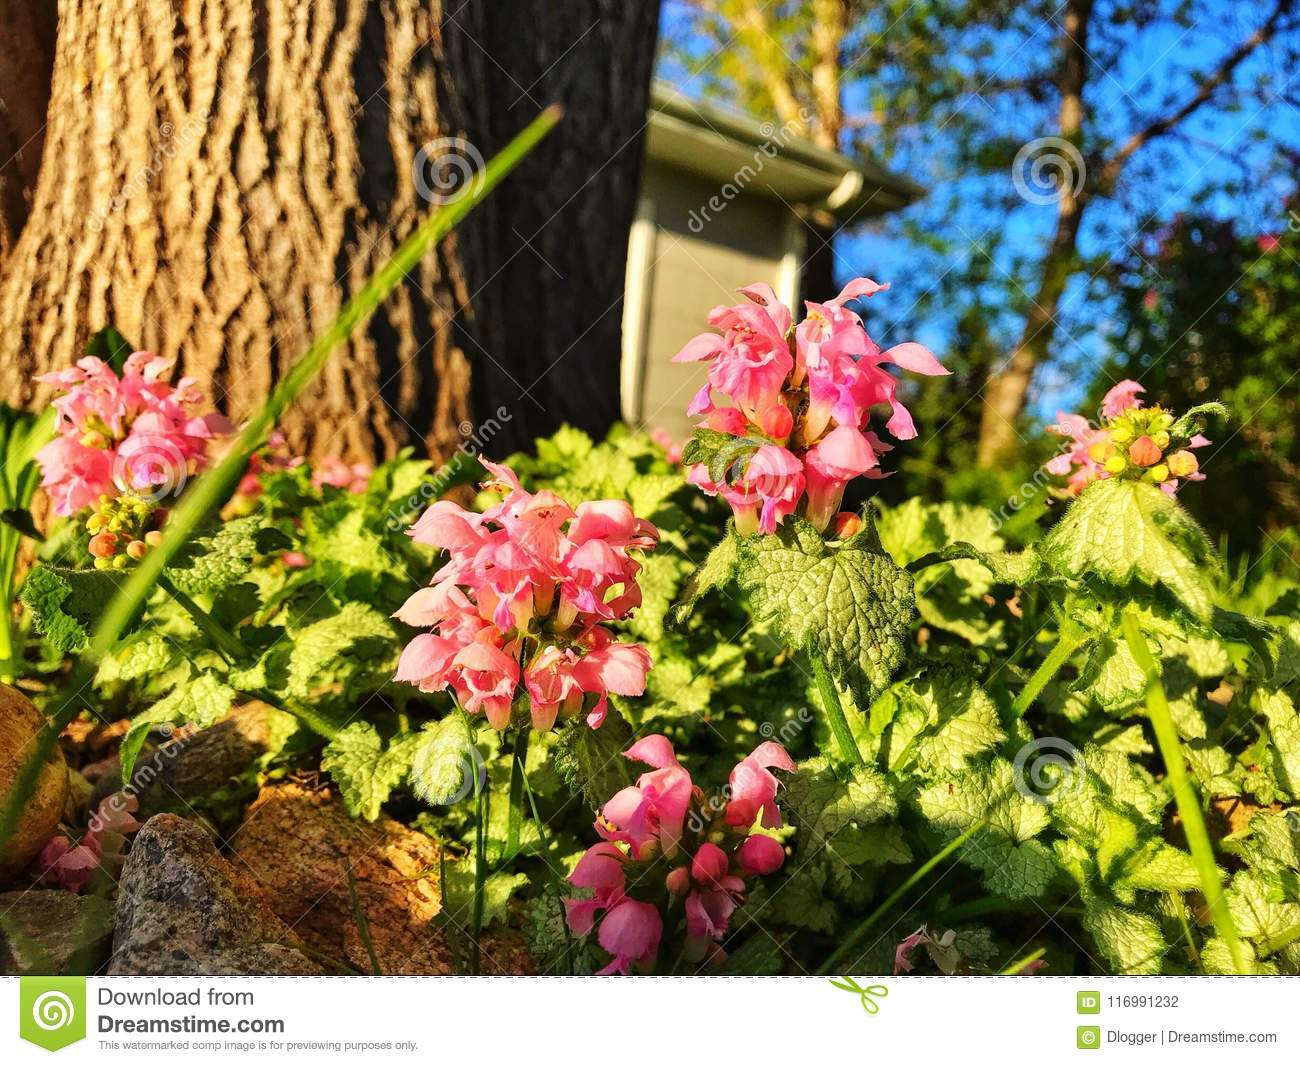 Early morning flowers stock photo image of tree early 116991232 download early morning flowers stock photo image of tree early 116991232 mightylinksfo